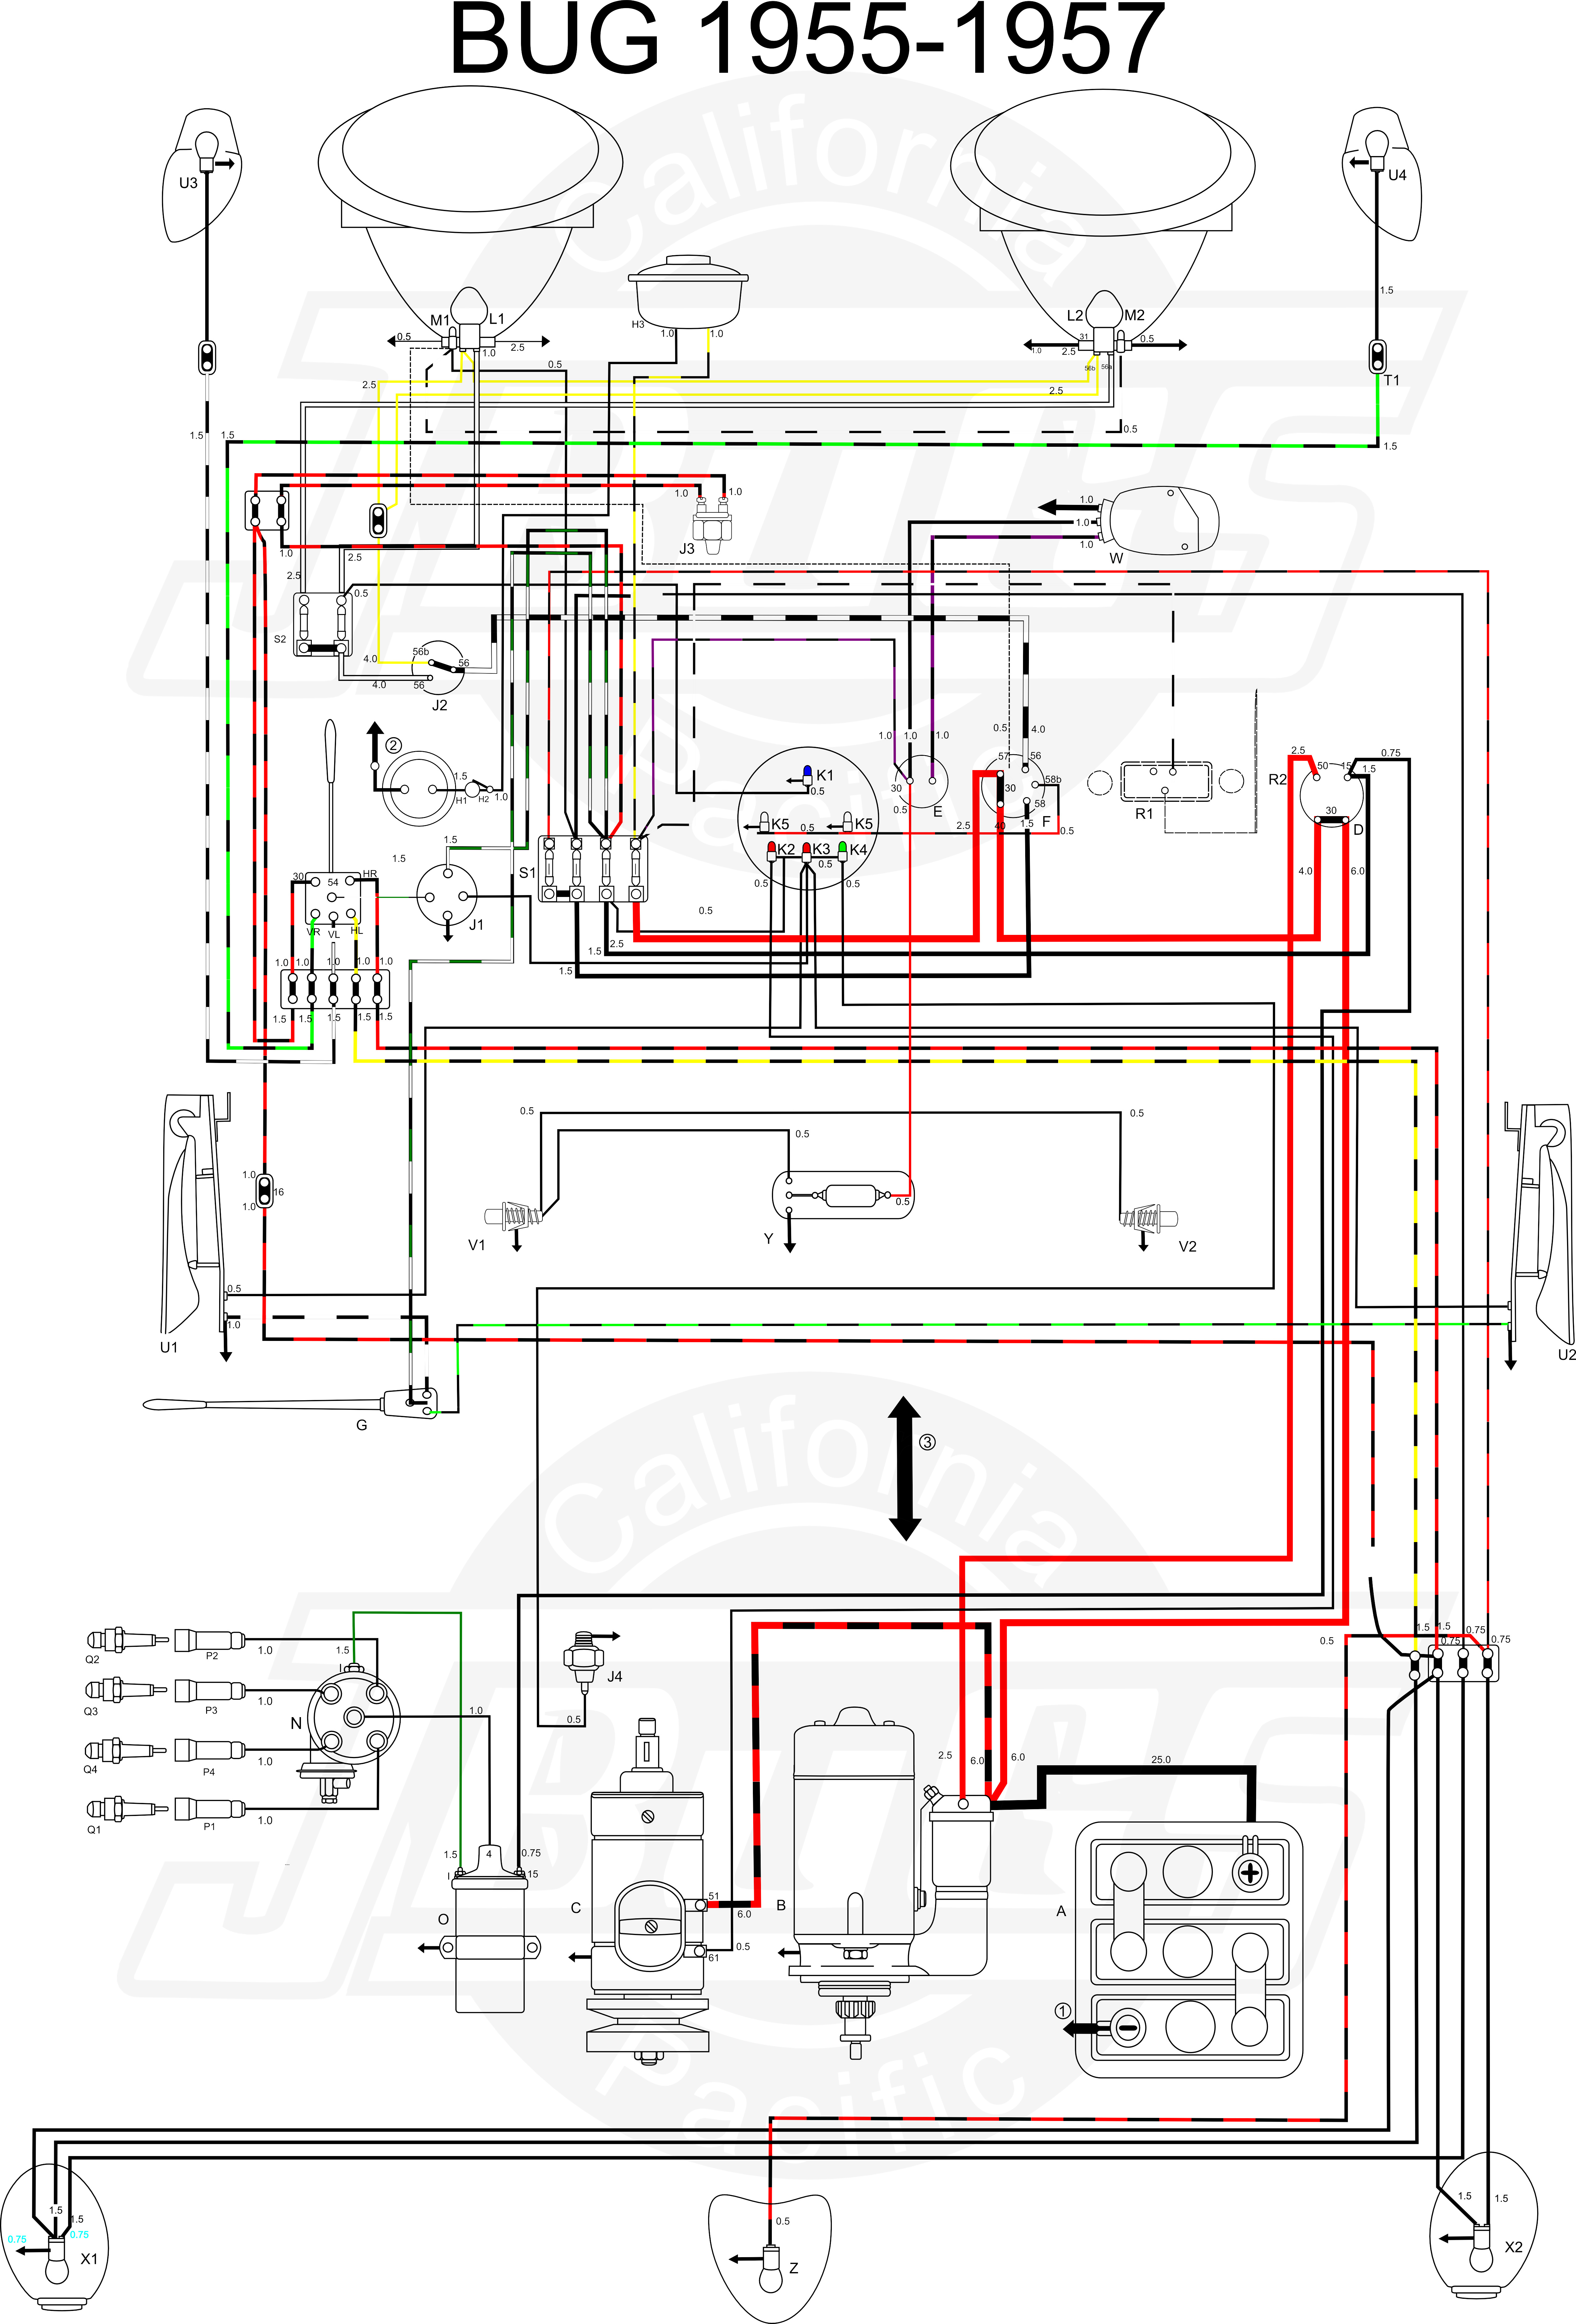 wiring diagram for air cooled vw online schematic diagram u2022 rh holyoak co 69 VW Beetle Wiring Diagram 2001 Volkswagen Beetle Wiring Diagram